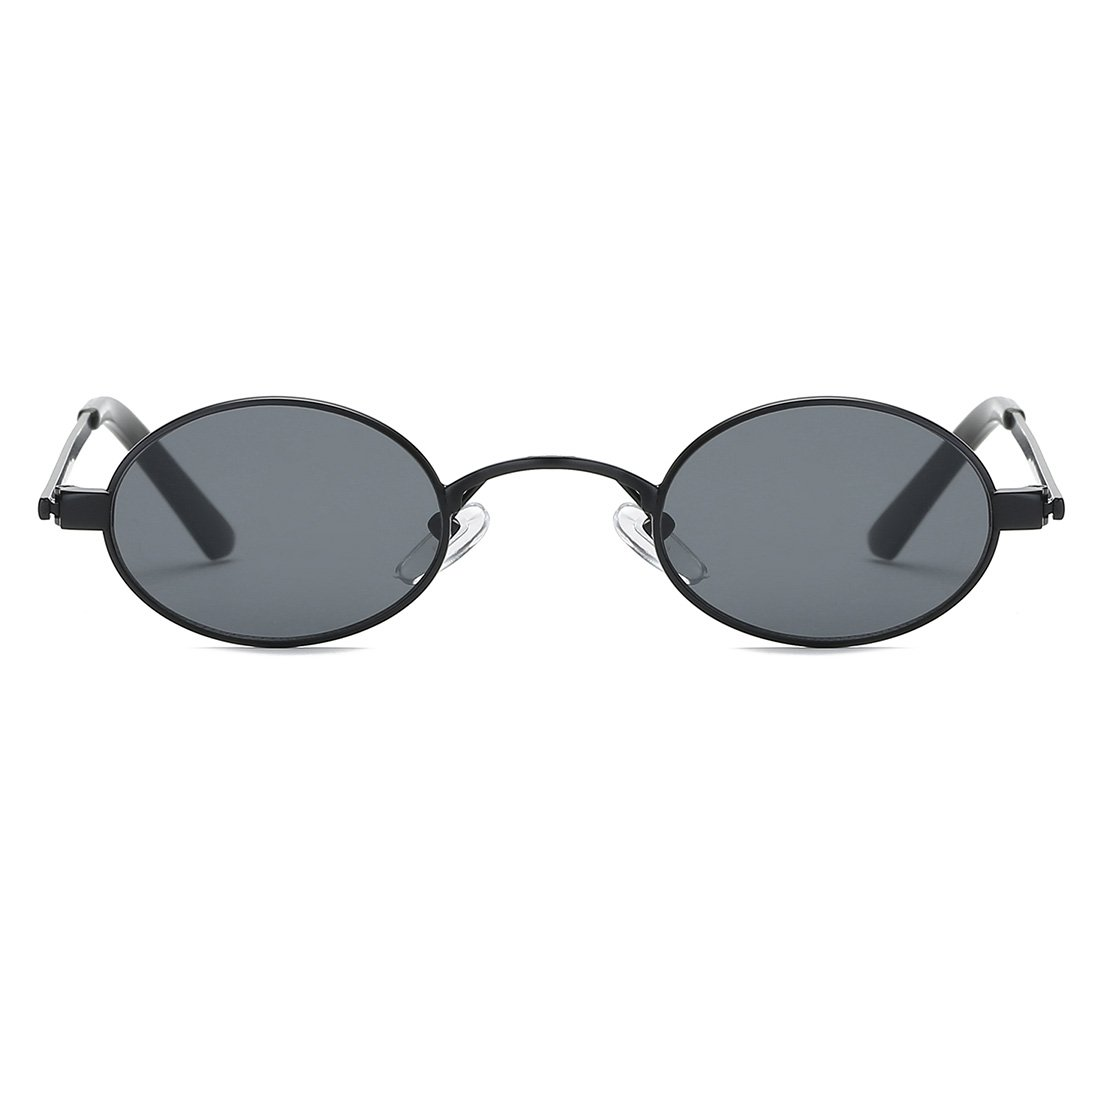 75614a2662d Amazon.com  Kimorn Sunglasses Small Round Metal Frame Oval Candy Colors  Unisex Sun Glasses K0577 (Black)  Clothing